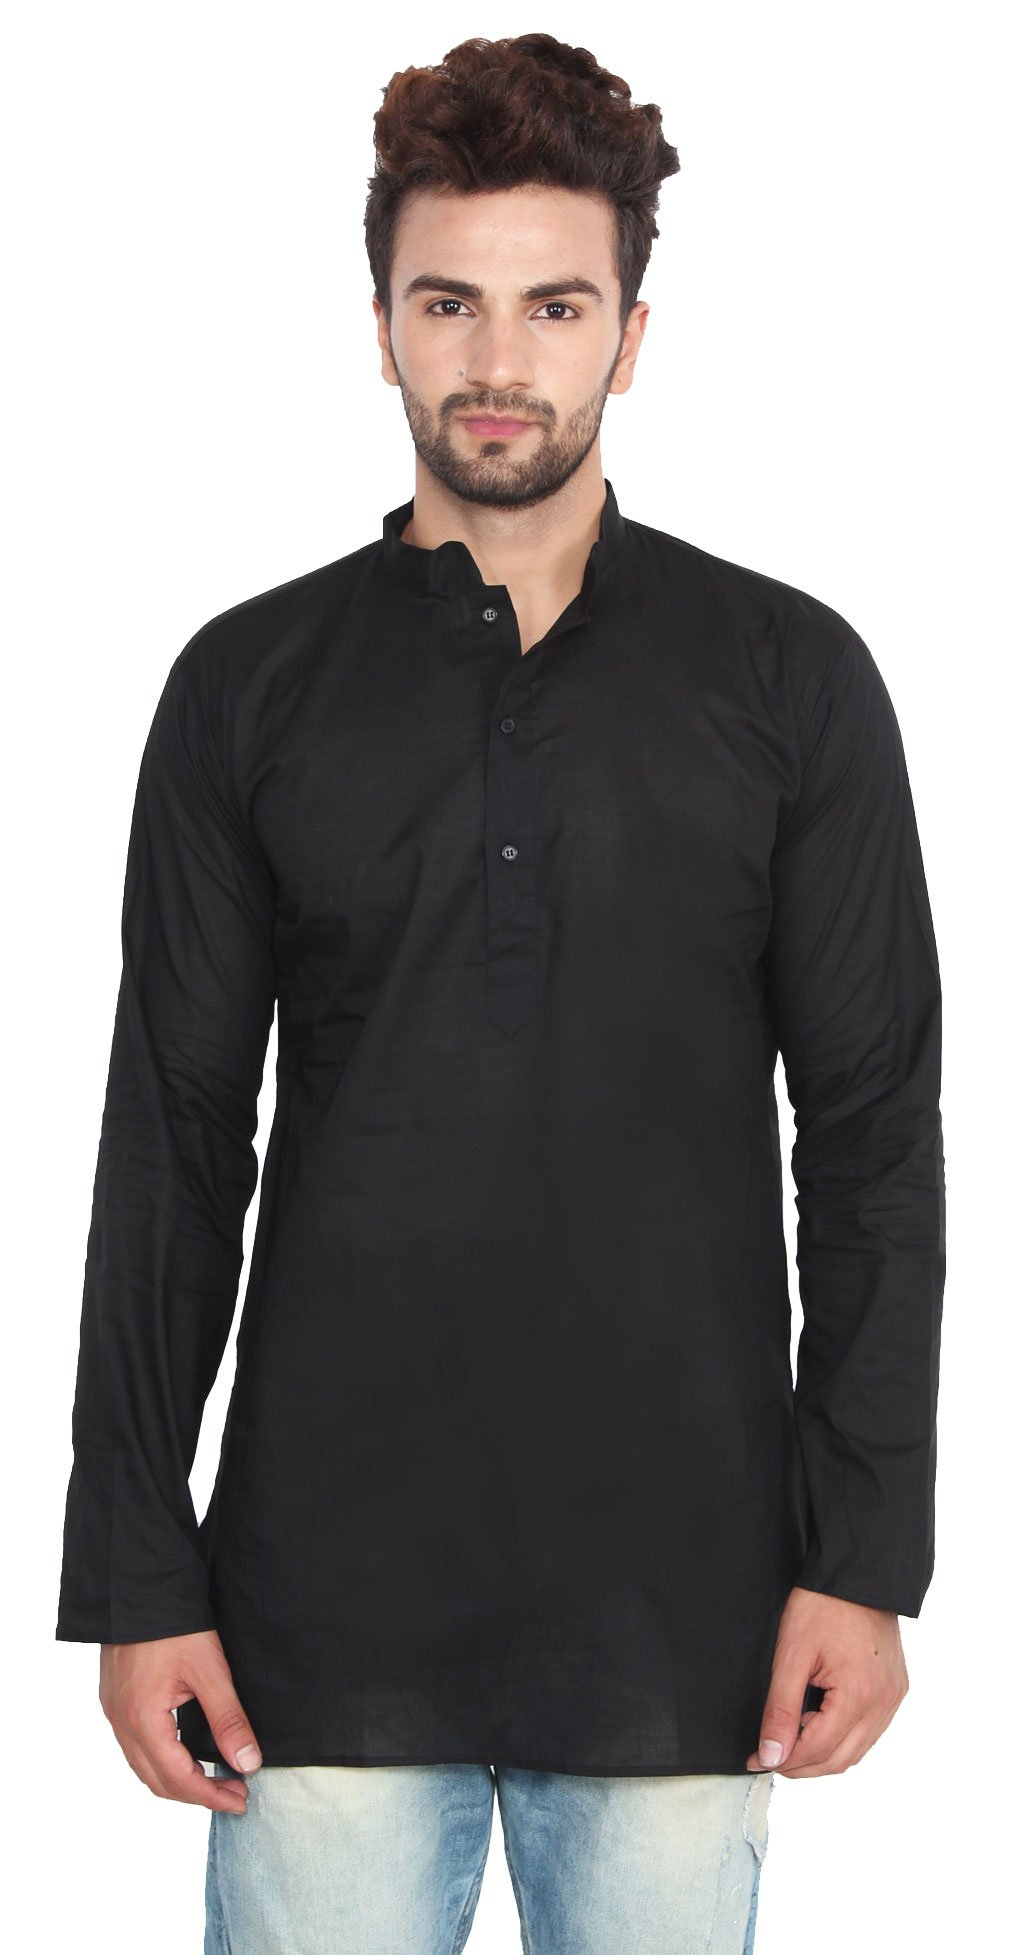 Cotton Mens Short Kurta Shirt India Clothes (Black, XL)